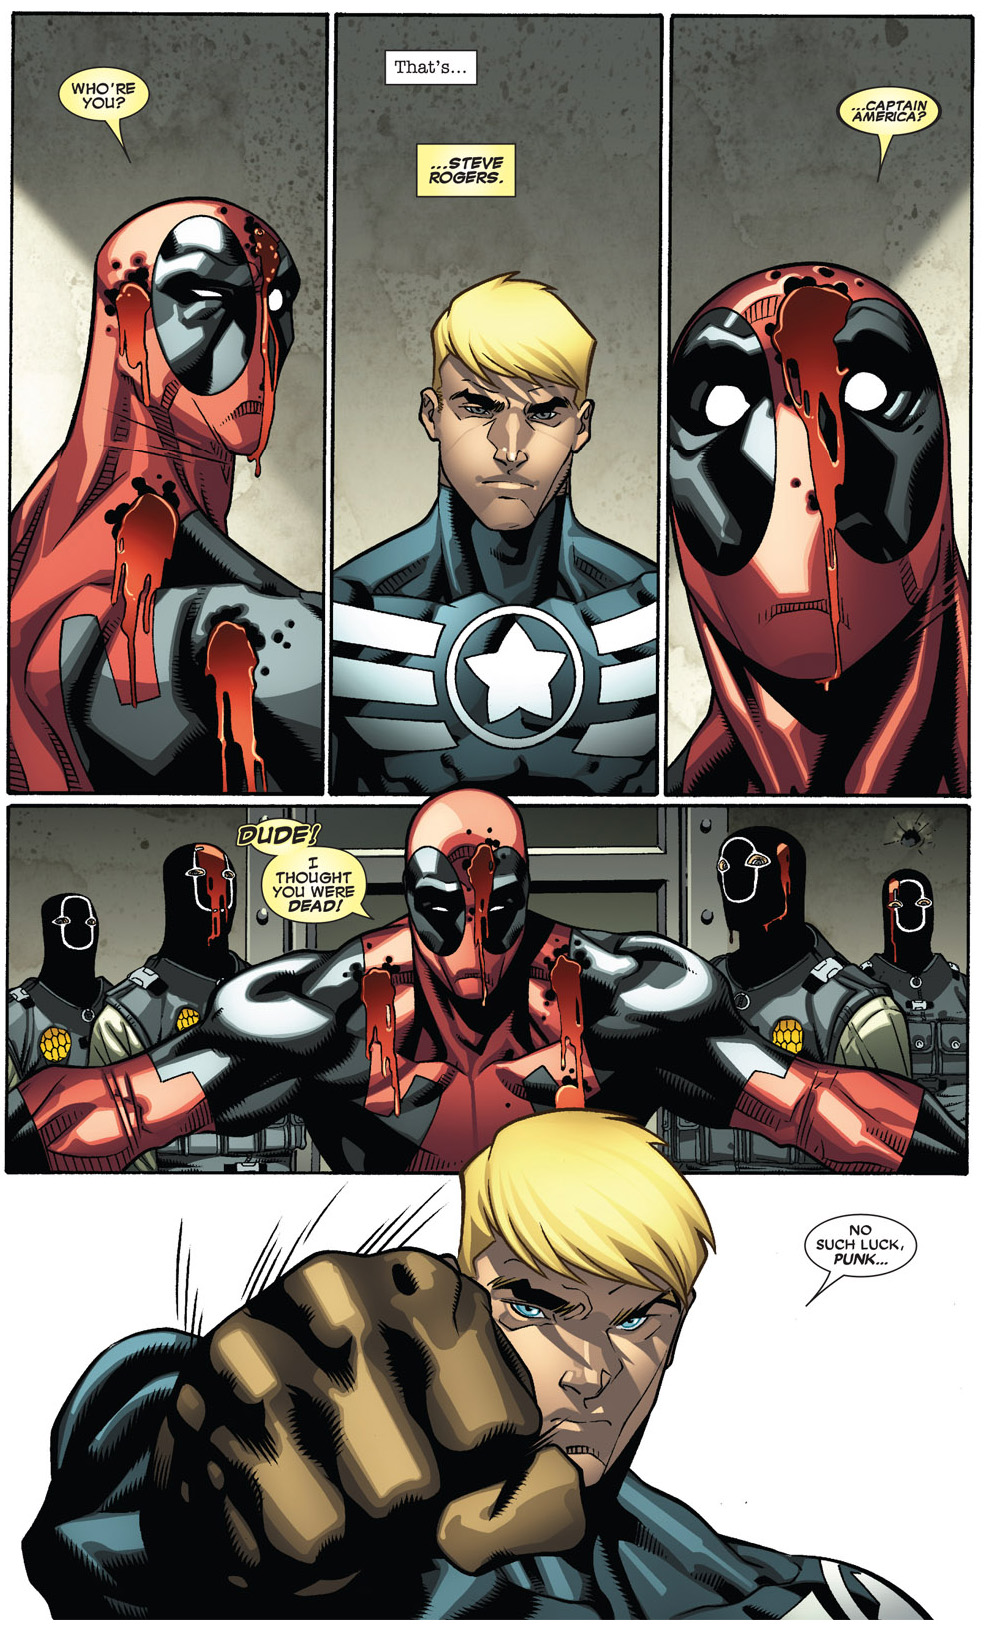 Captain America Punches Deadpool | Comicnewbies